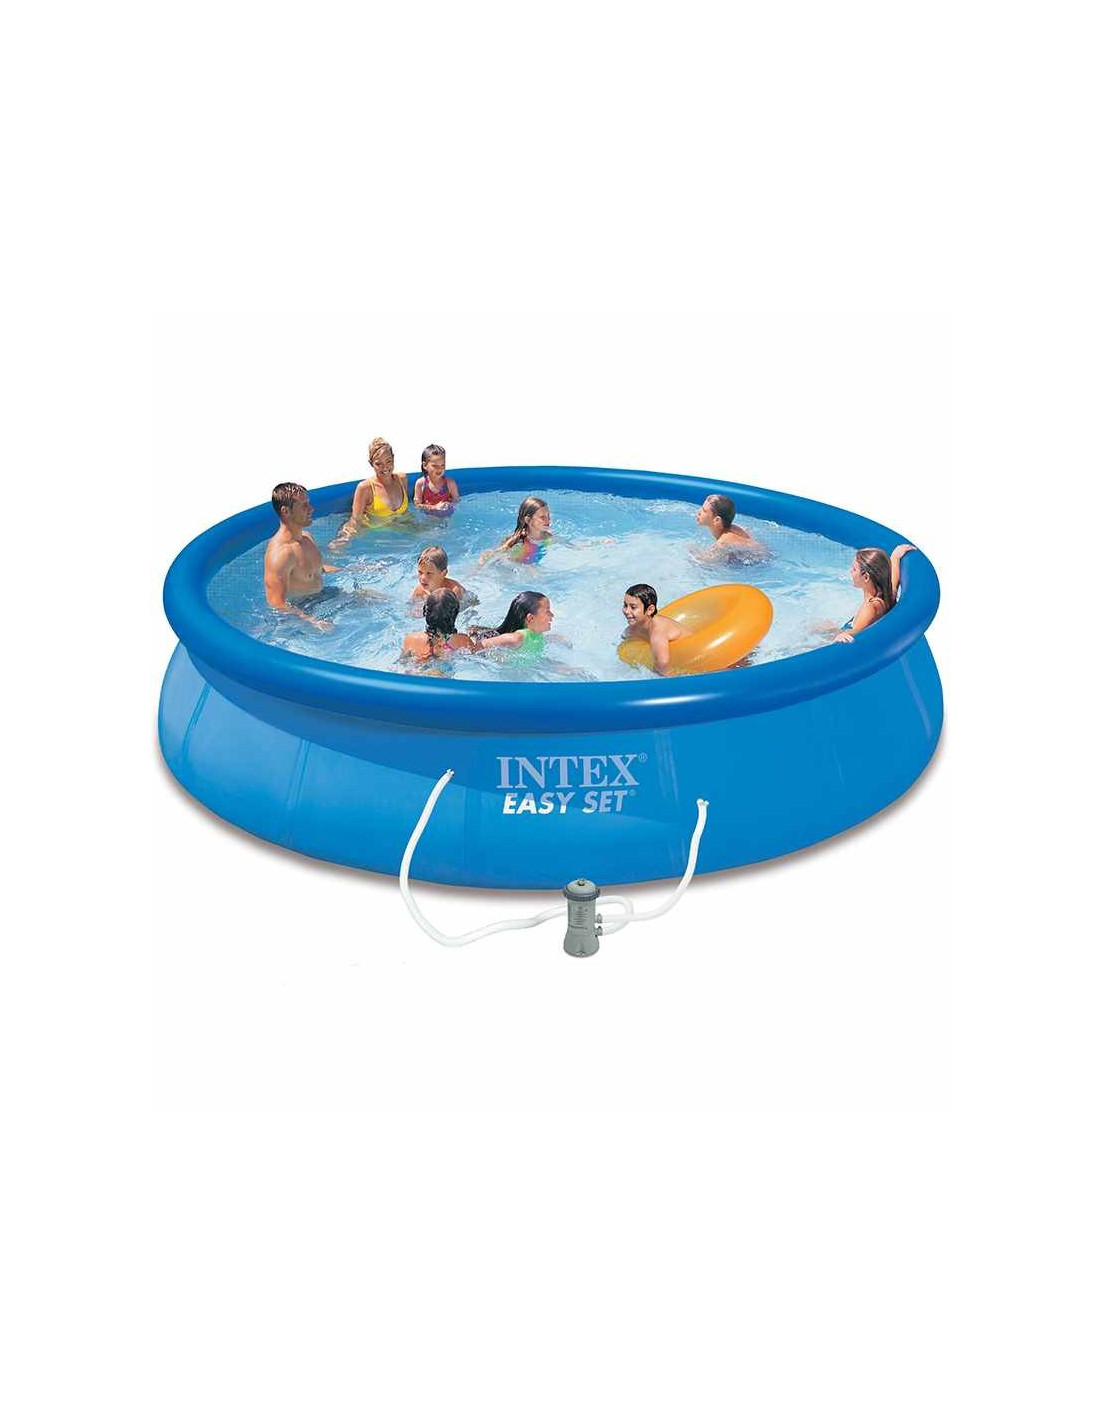 Intex piscine autoportante easy set 457 x 84 cm pompe for Pompe piscine intex